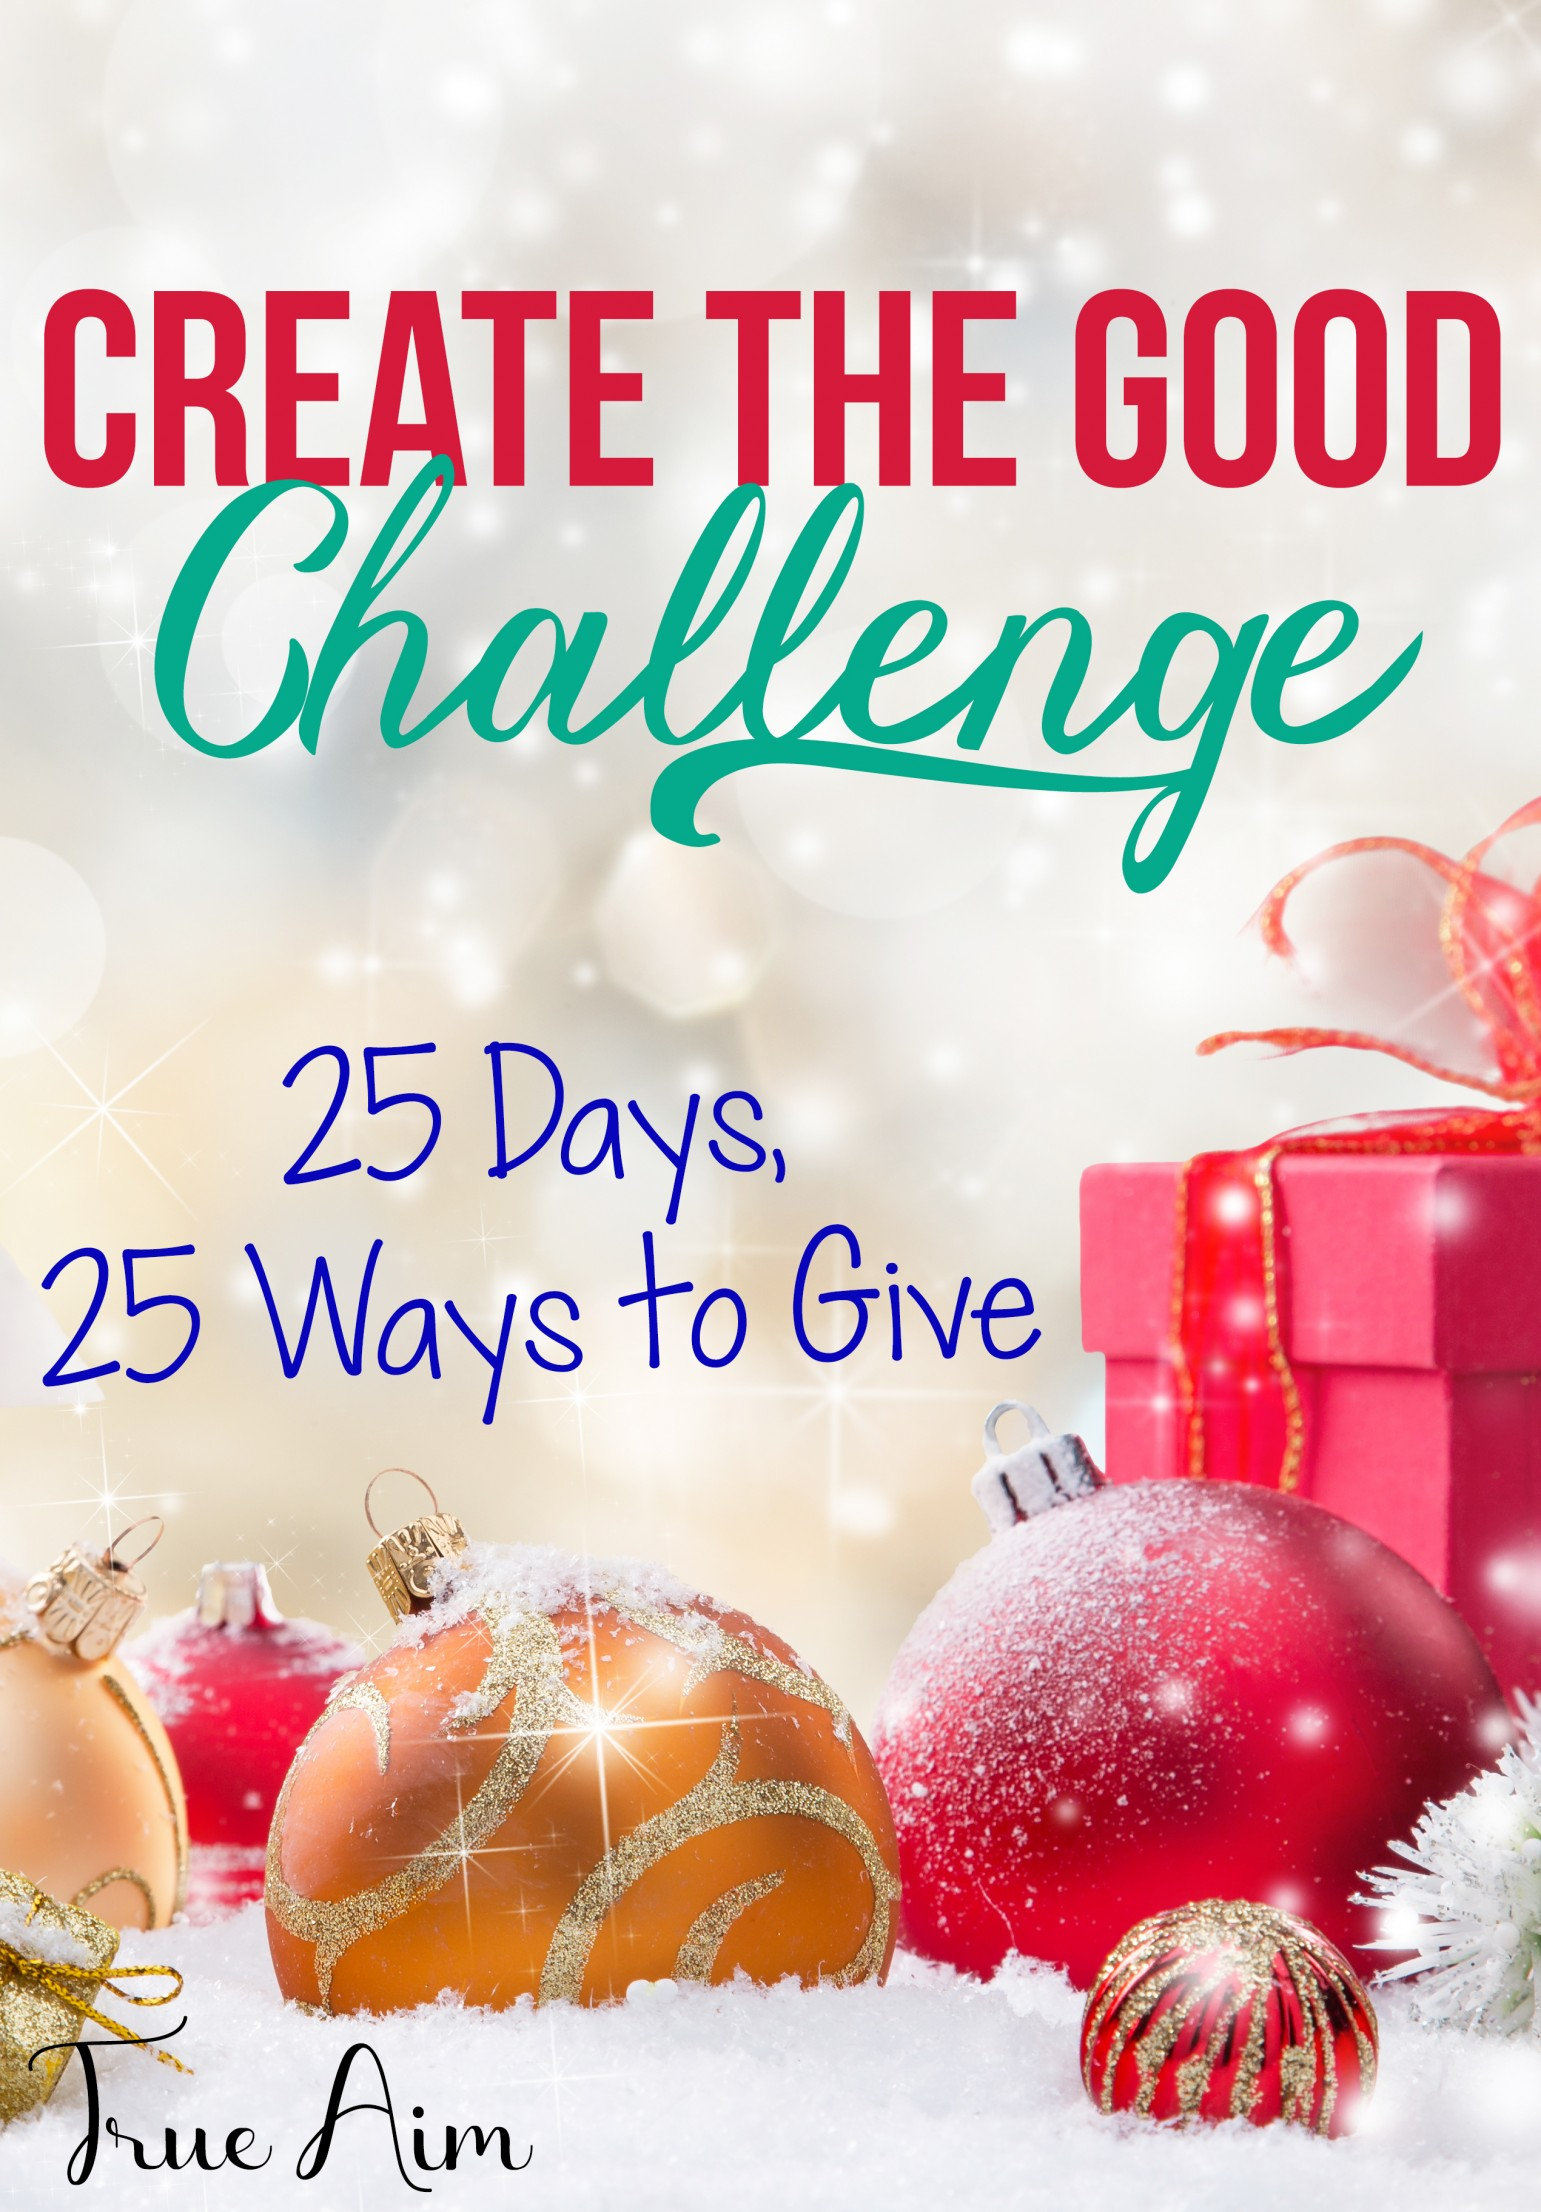 Create the Good Challenge